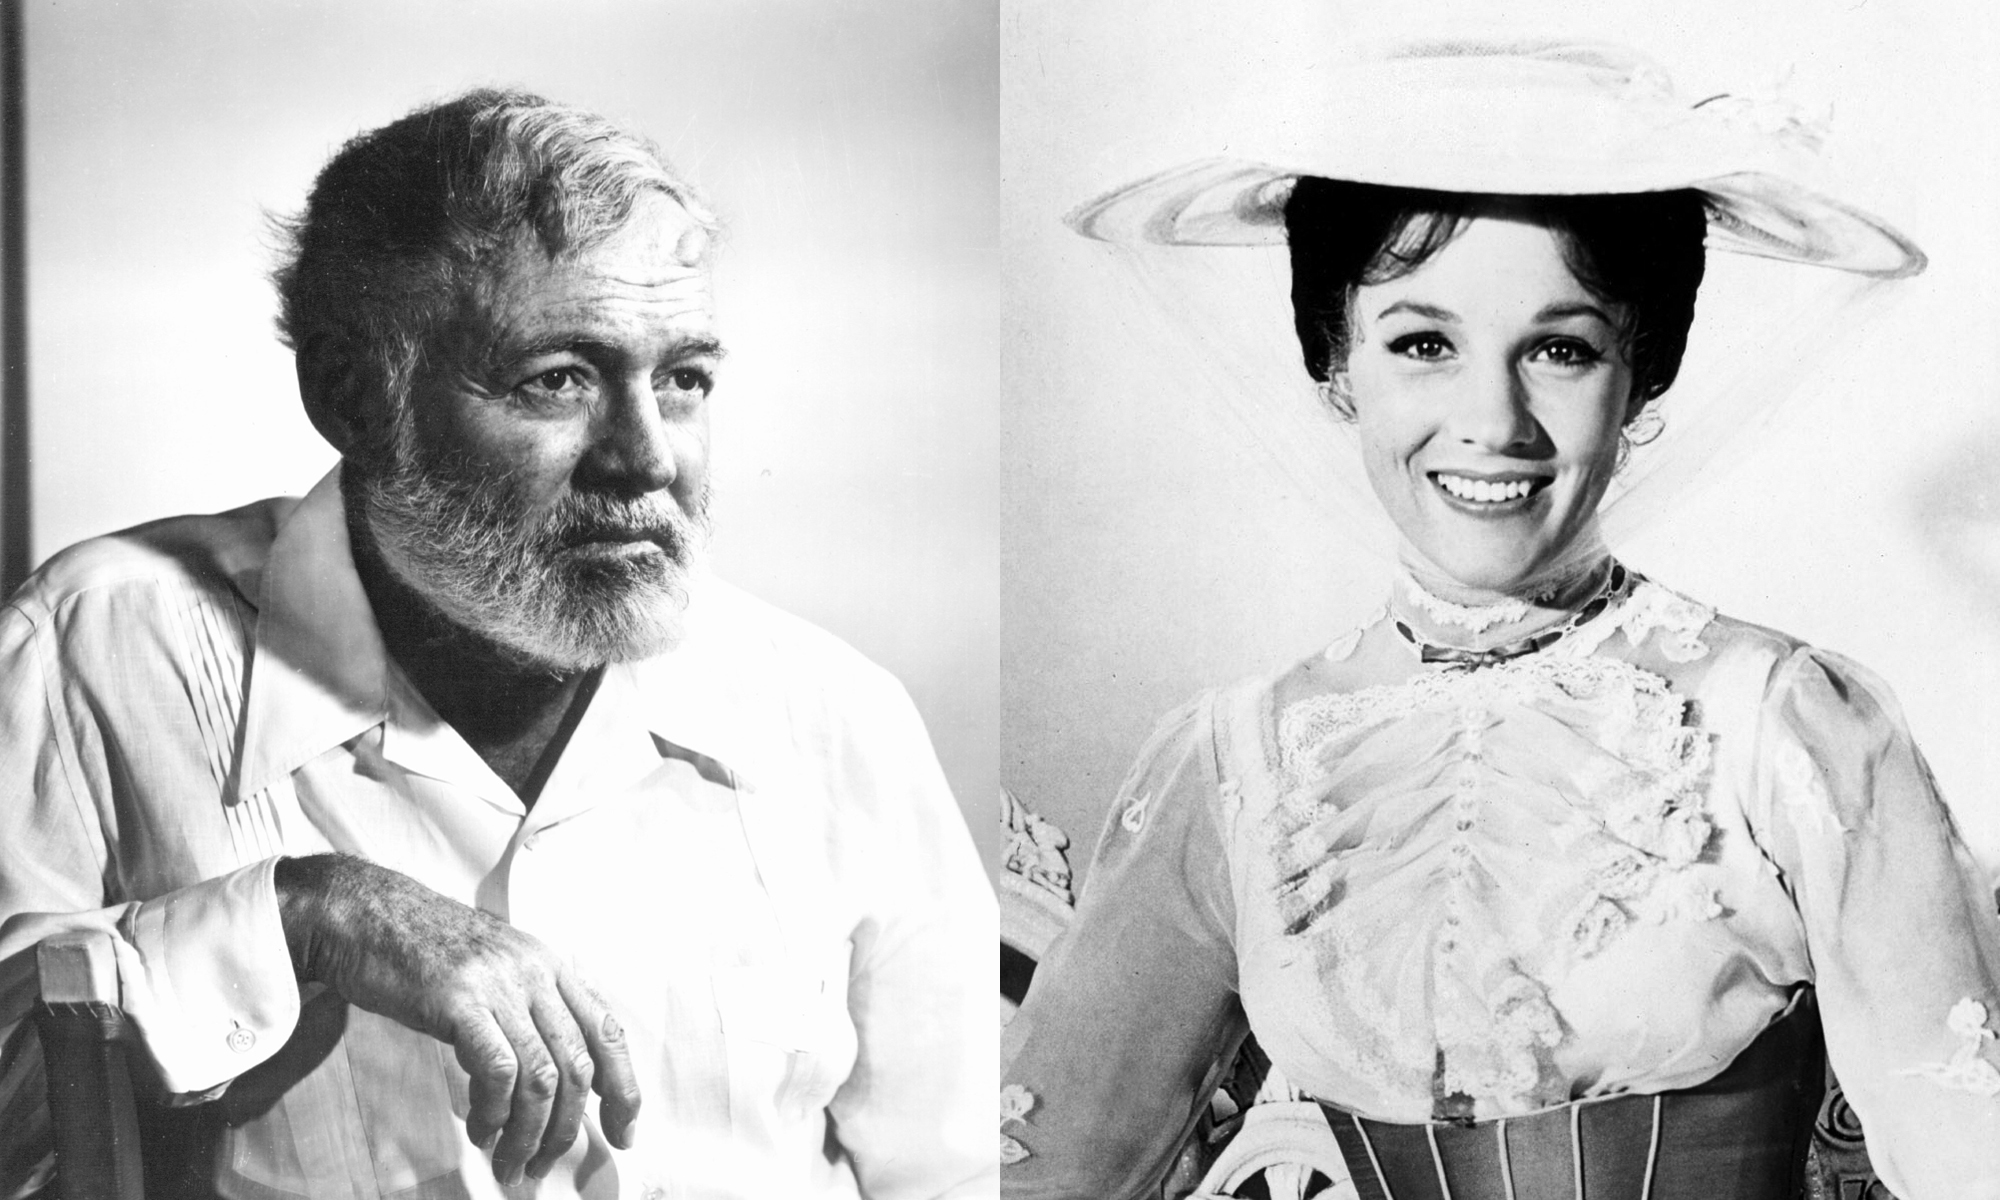 Undated file photo of writer, journalist and American war correspondent, Ernest Hemingway.                     Julie Andrews as Mary Poppins in the 1964 film.